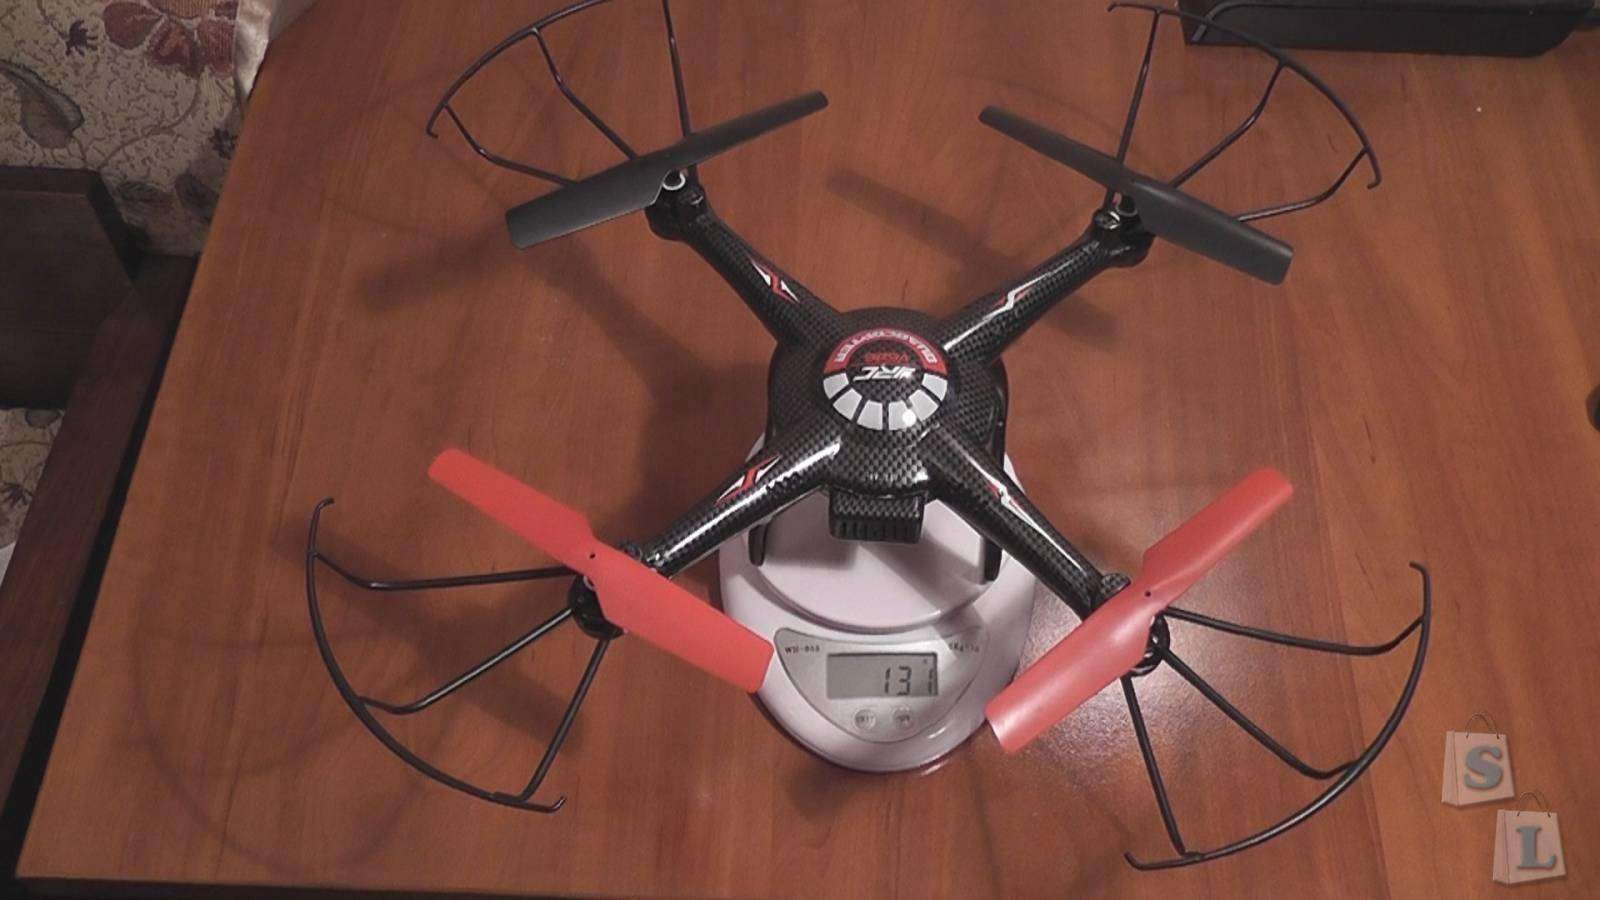 Banggood: JJRC V686J 2.4GHz, 4Ch, 6 Axis Gyro, RC Quadcopter with Headless mode and 2MP Camera (RTF)